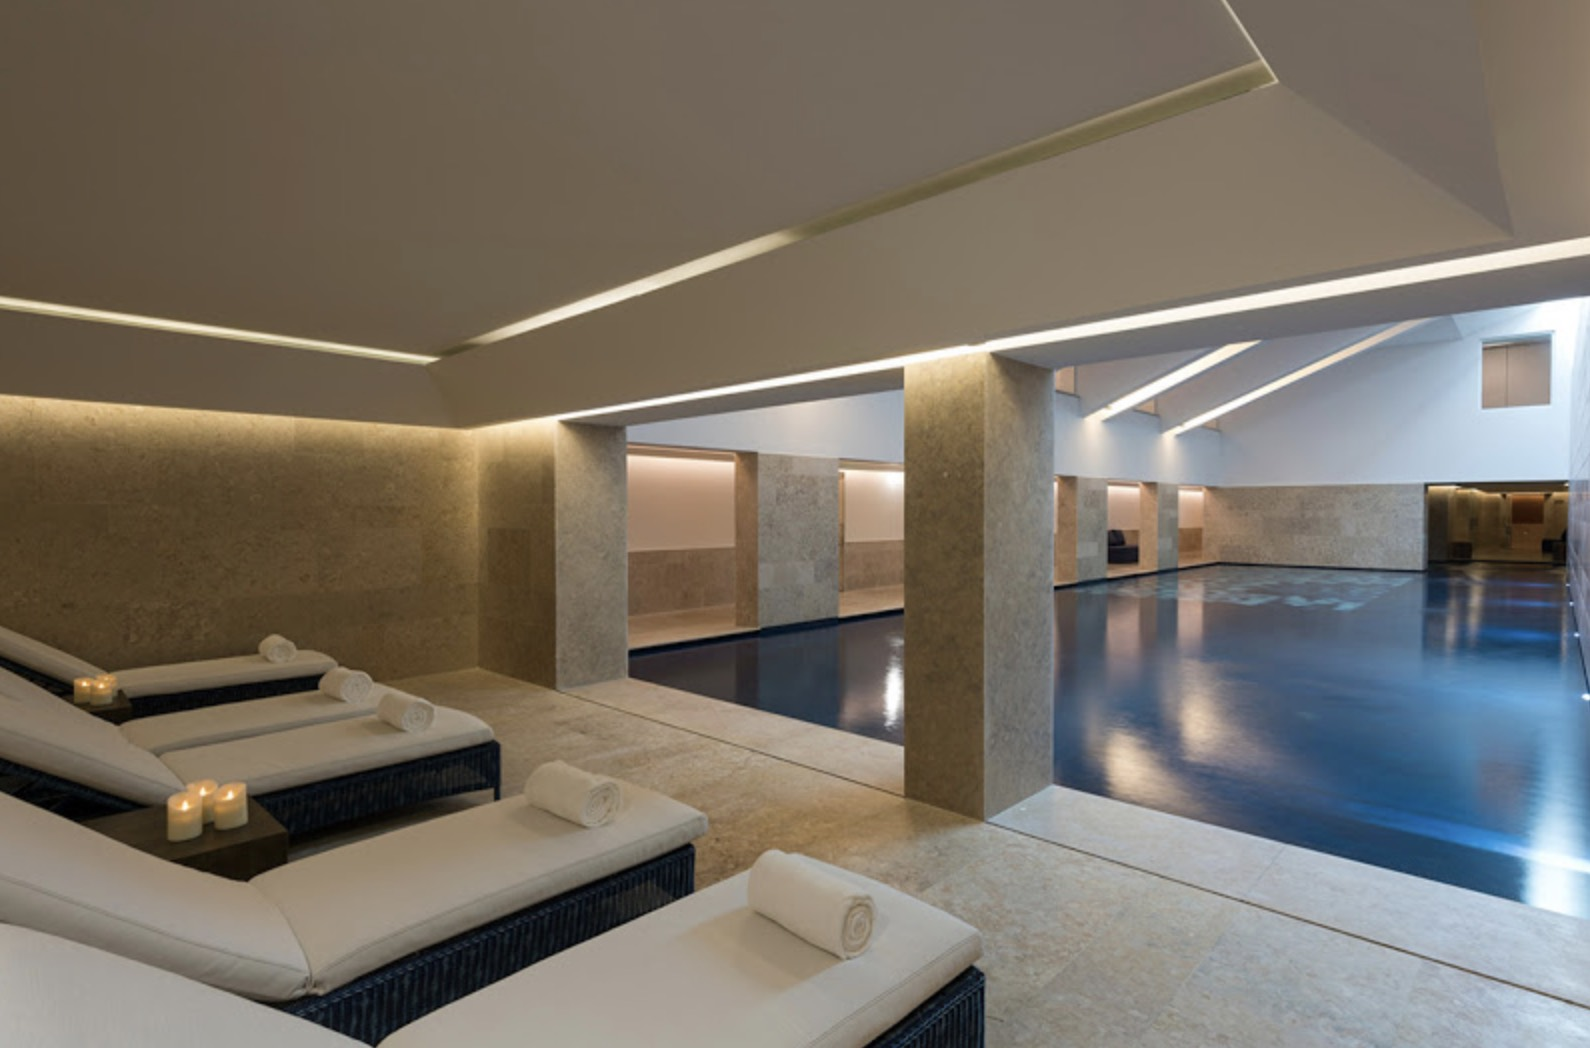 Palácio do Governador - Indoor pool and seating luxury spa hotels in Lisbon